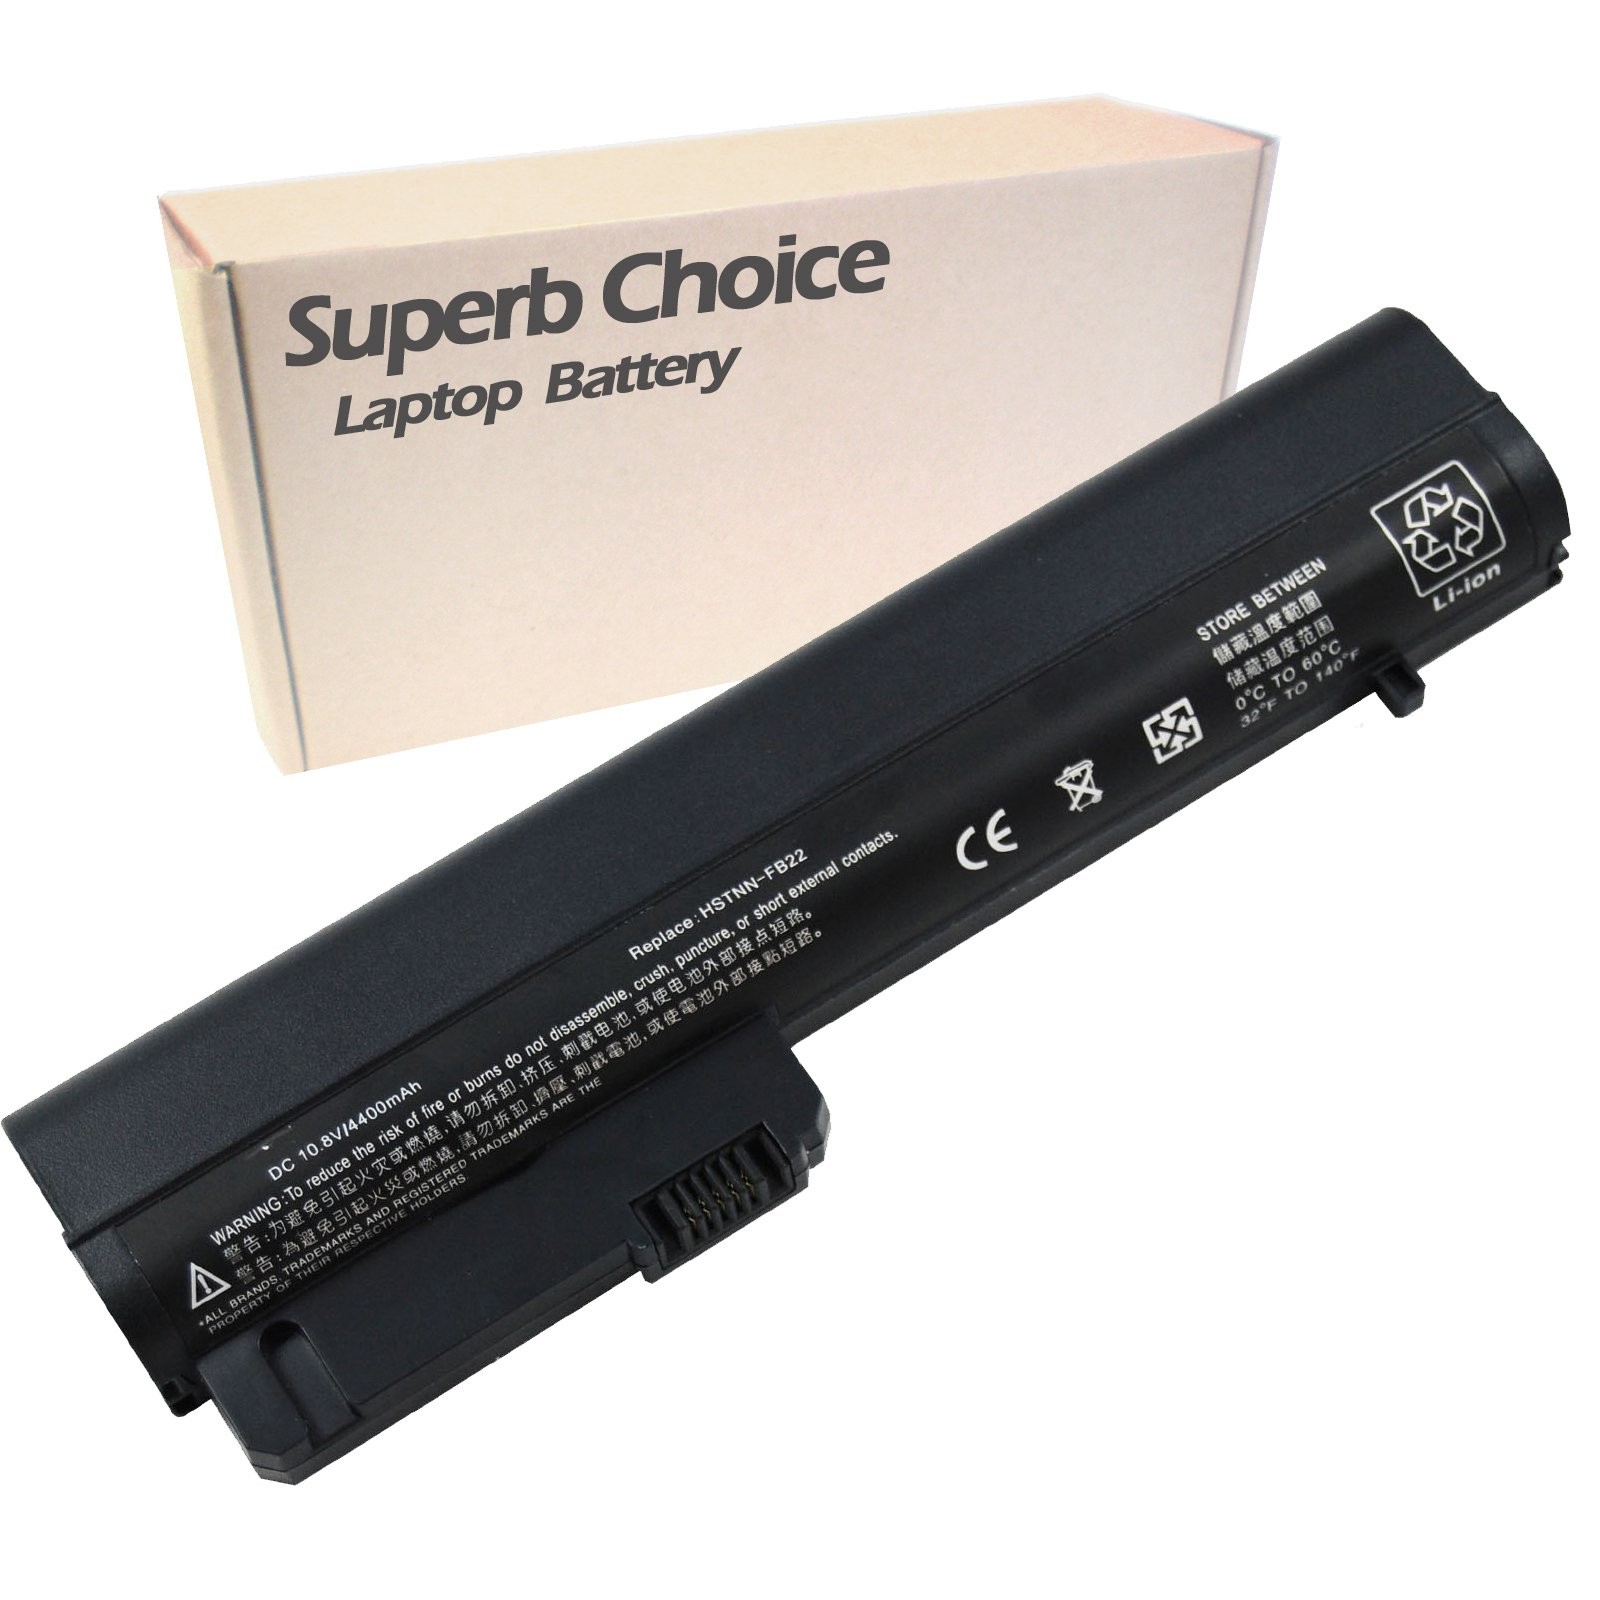 Superb Choice Battery for HP Compaq Business Notebook 2400 Series 2510p nc2400 HP 2533t Mobile Thin Client EliteBook 2530p